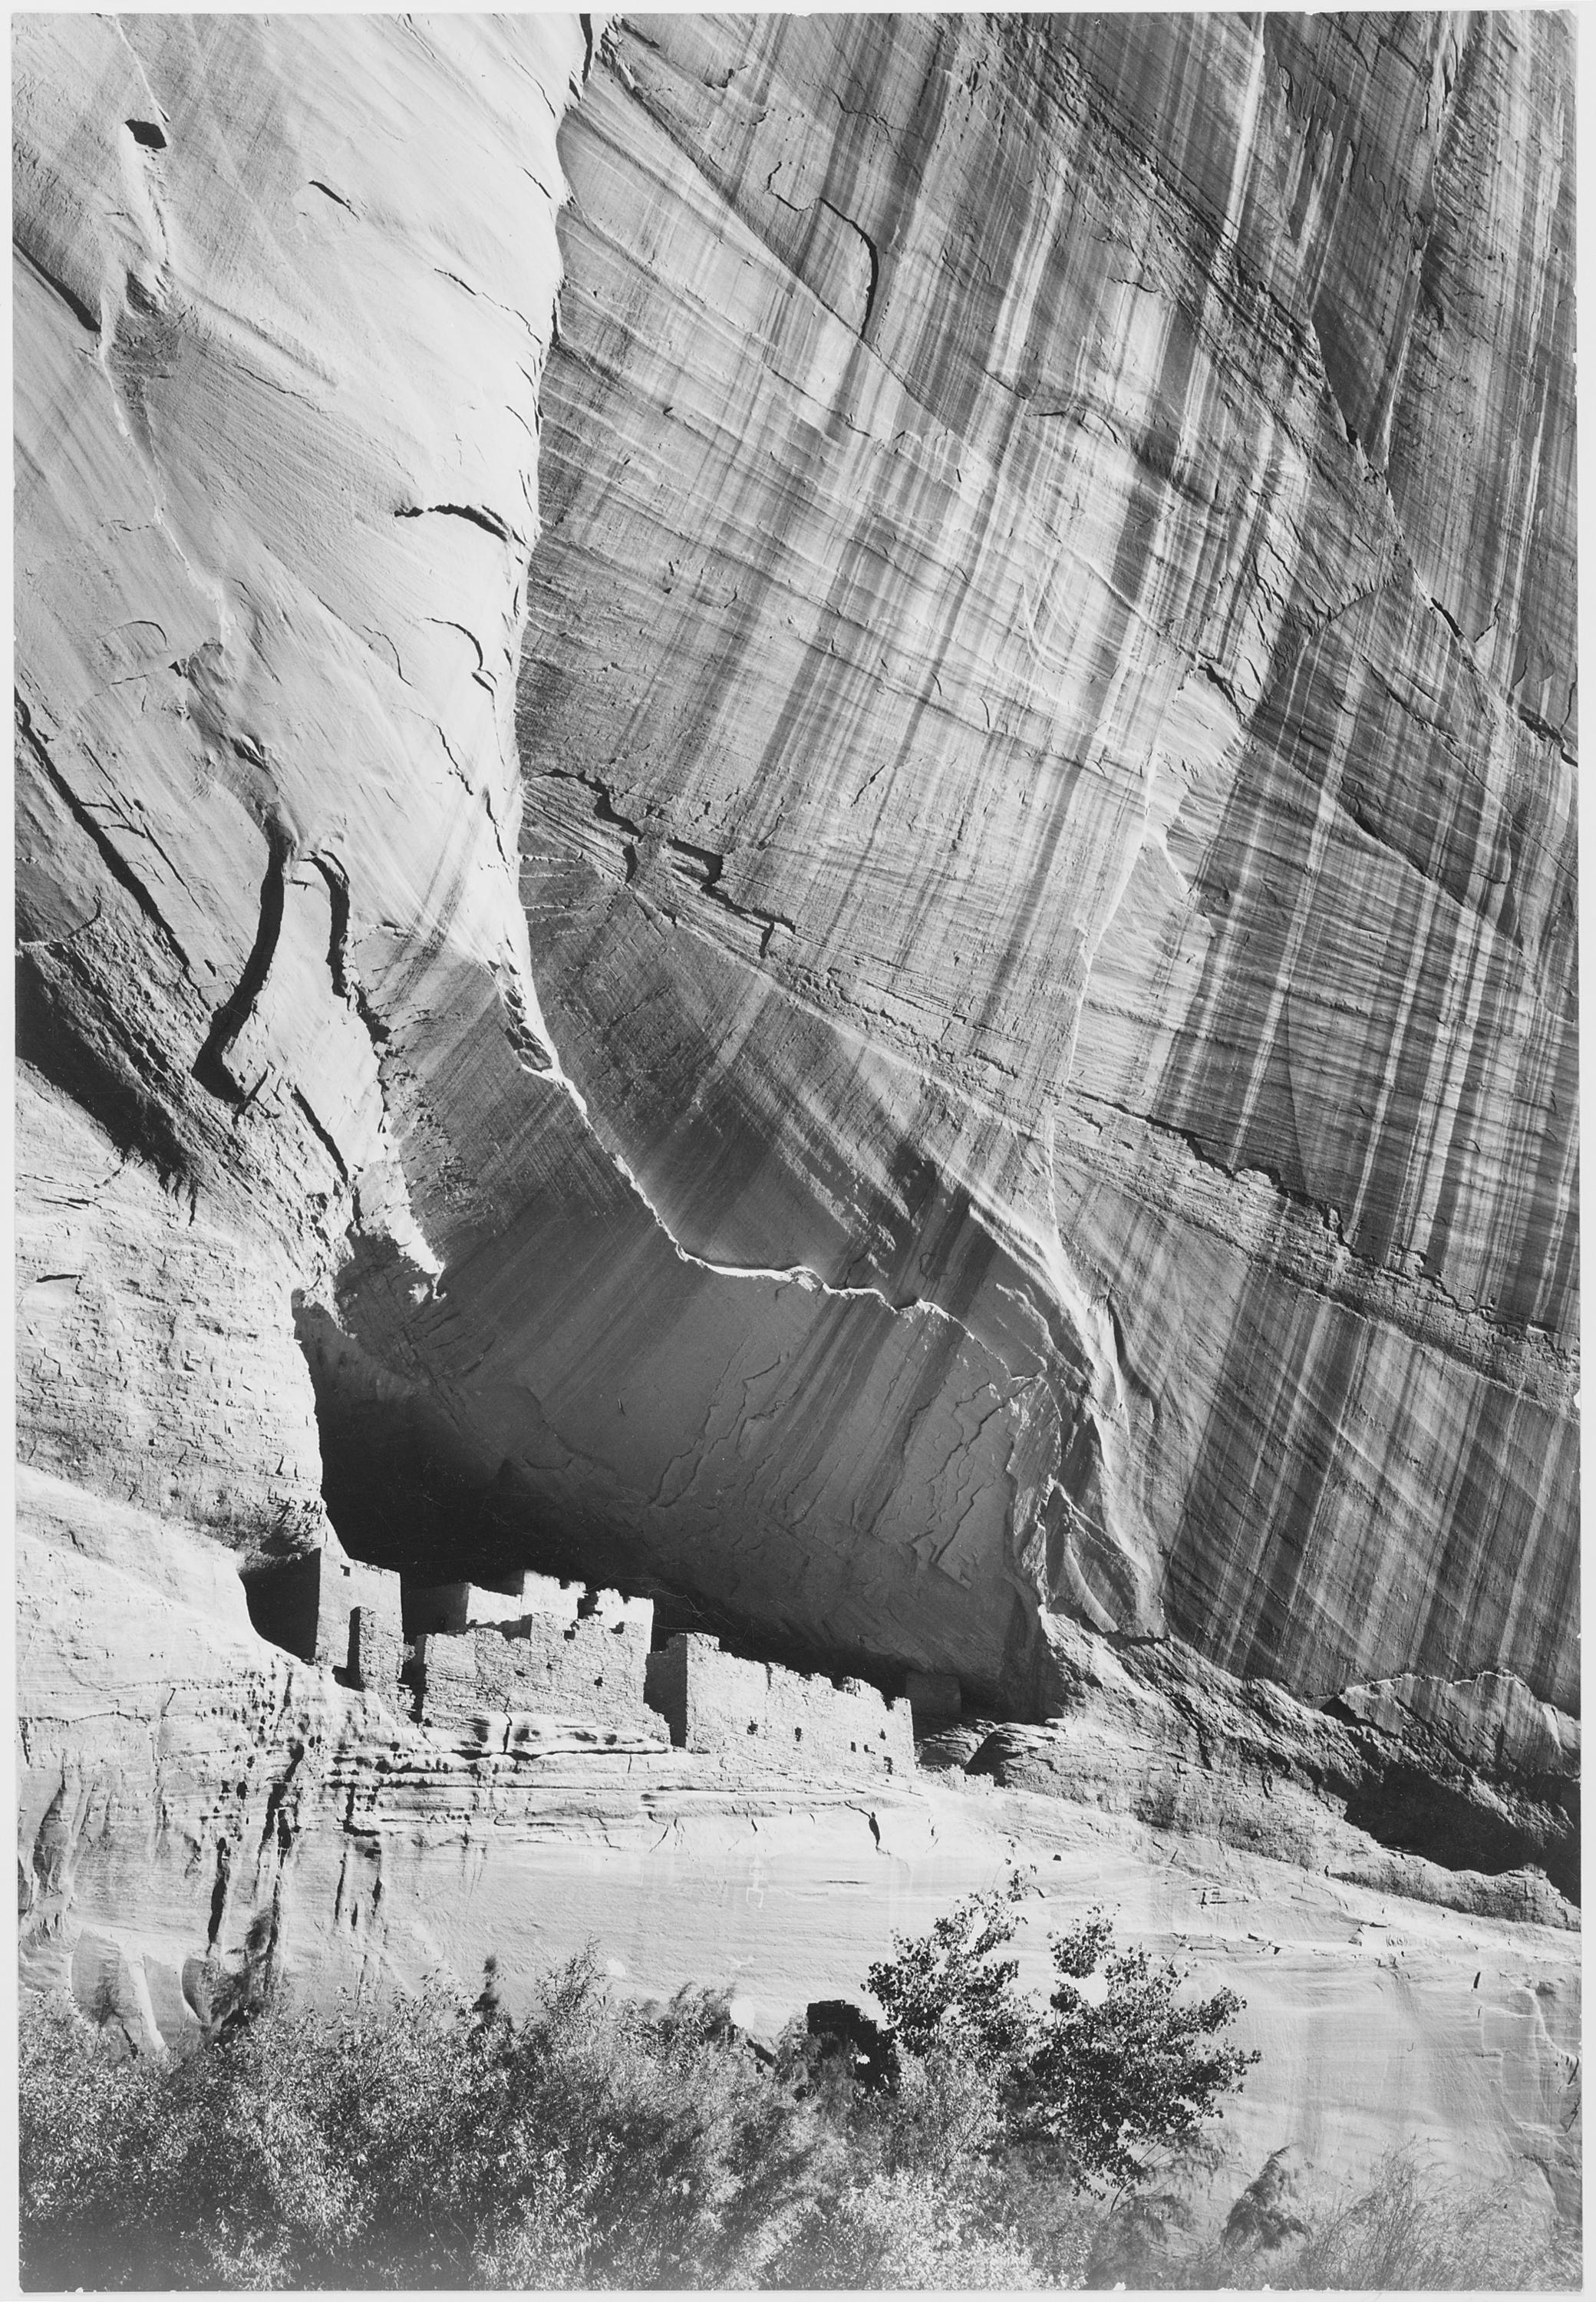 http://upload.wikimedia.org/wikipedia/commons/2/22/Ansel_Adams_-_National_Archives_79-AA-C01.jpg